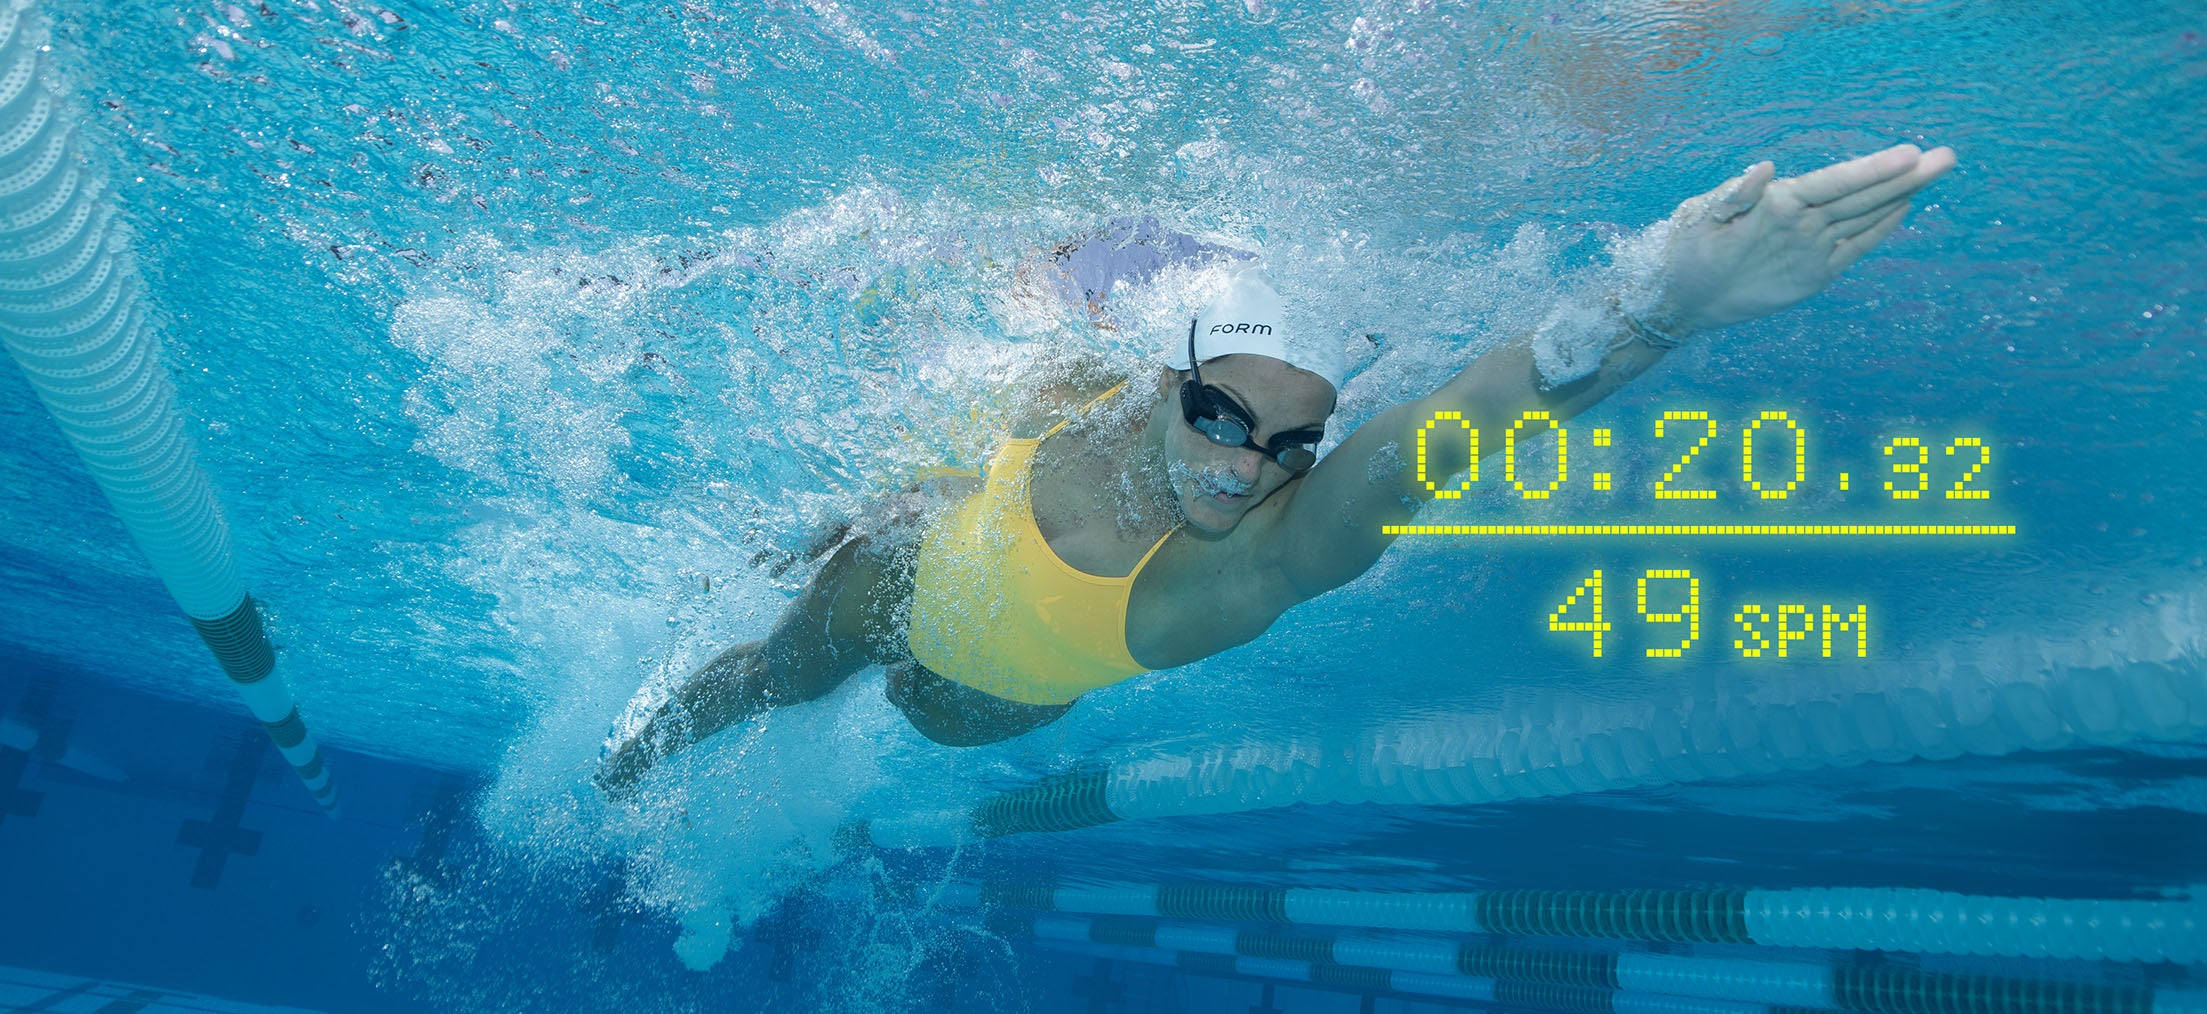 The FORM goggles with see-through smart display is the ultimate swim companion.